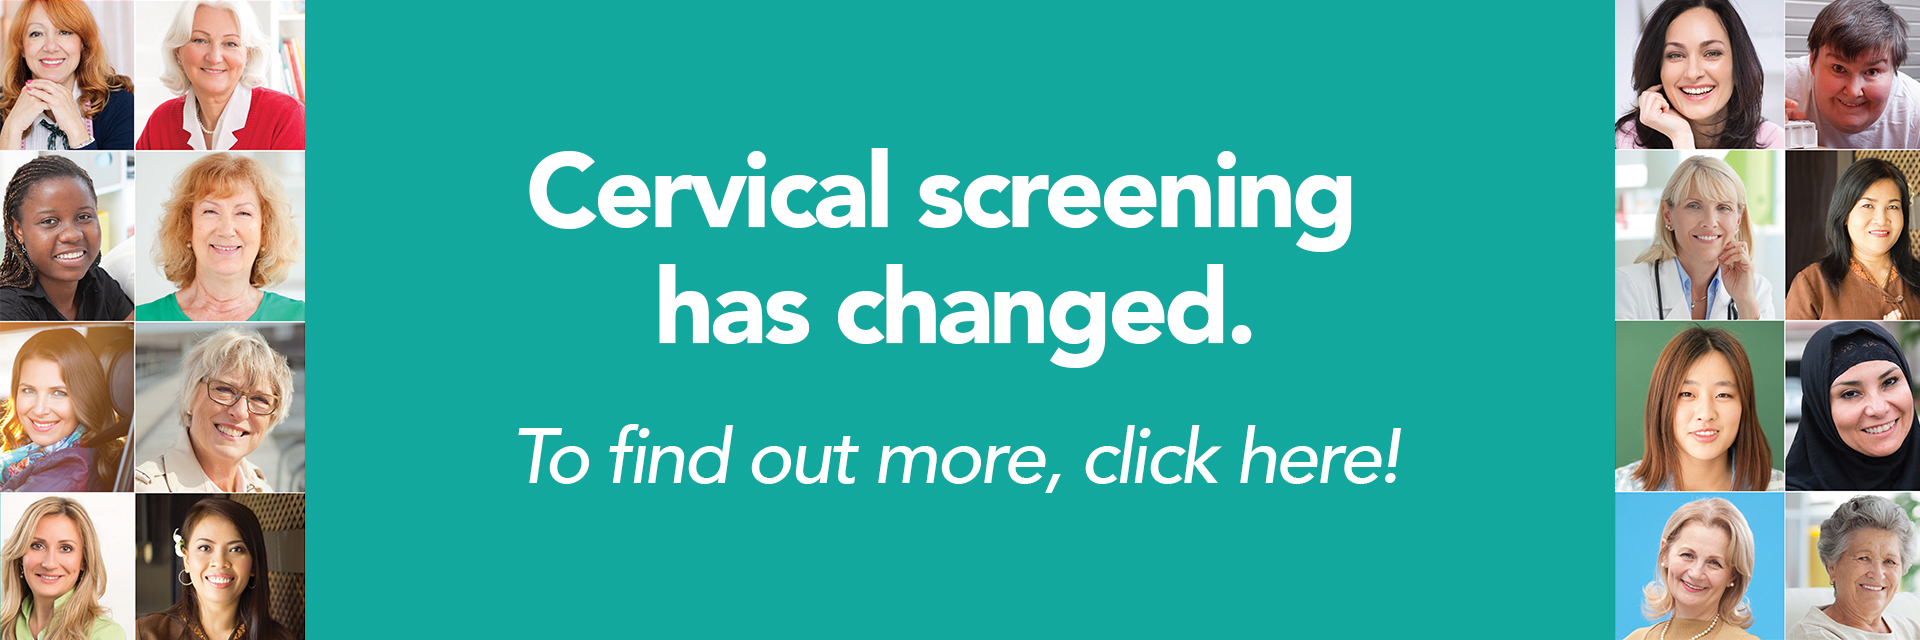 Cervical screening has changed